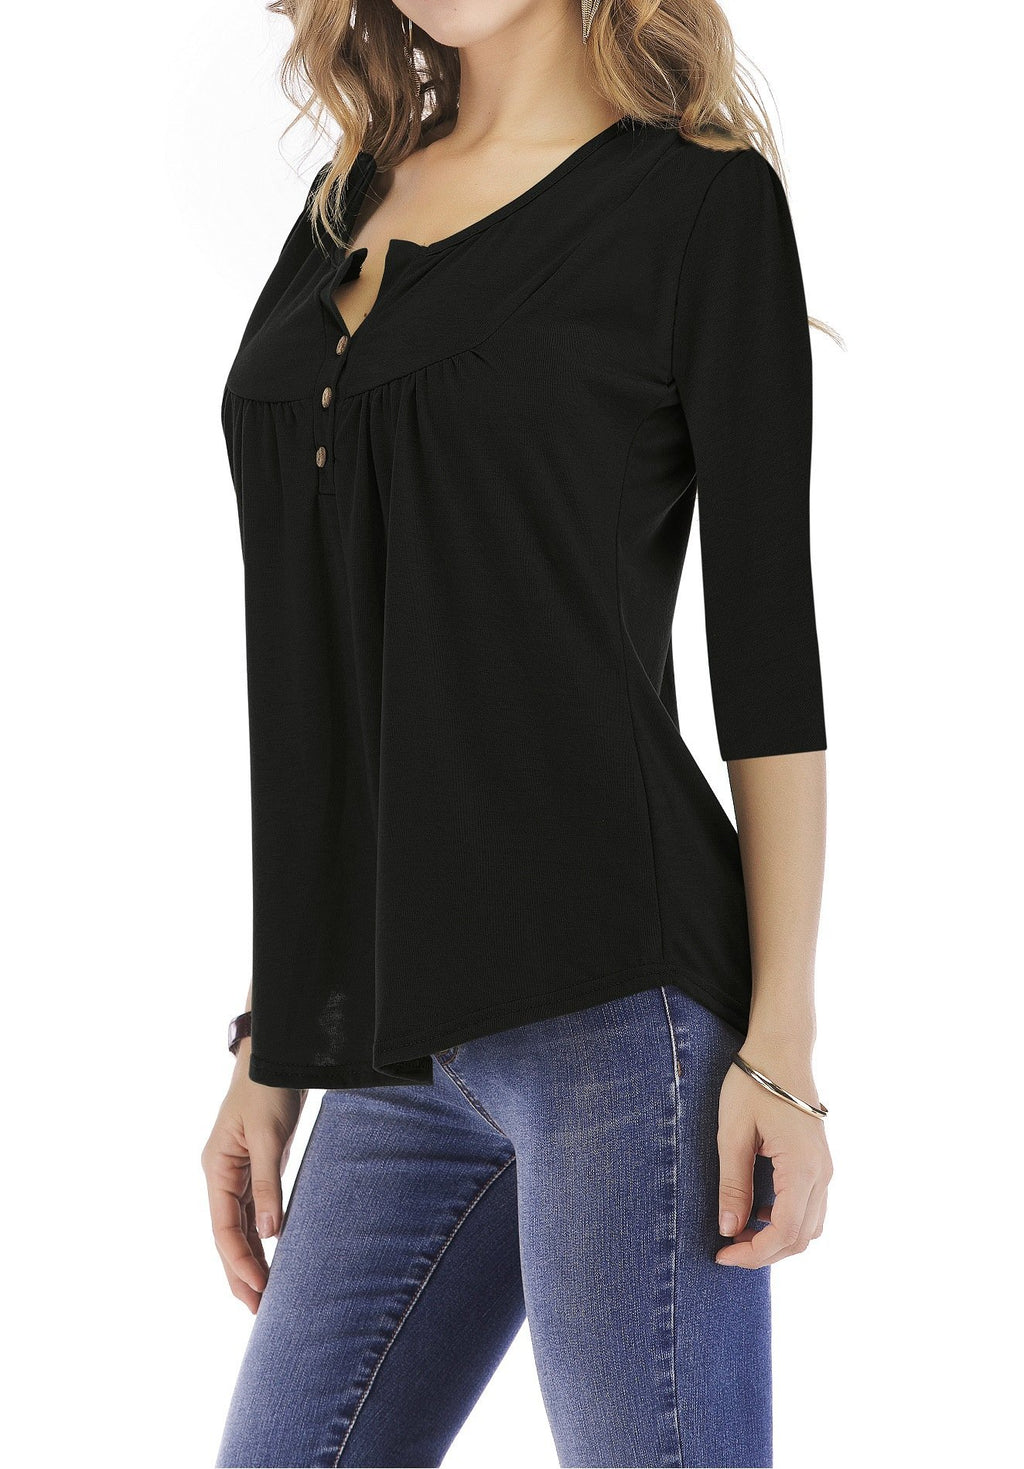 Solid Gathering Chest Yoke 3/4 Sleeve T-shirt